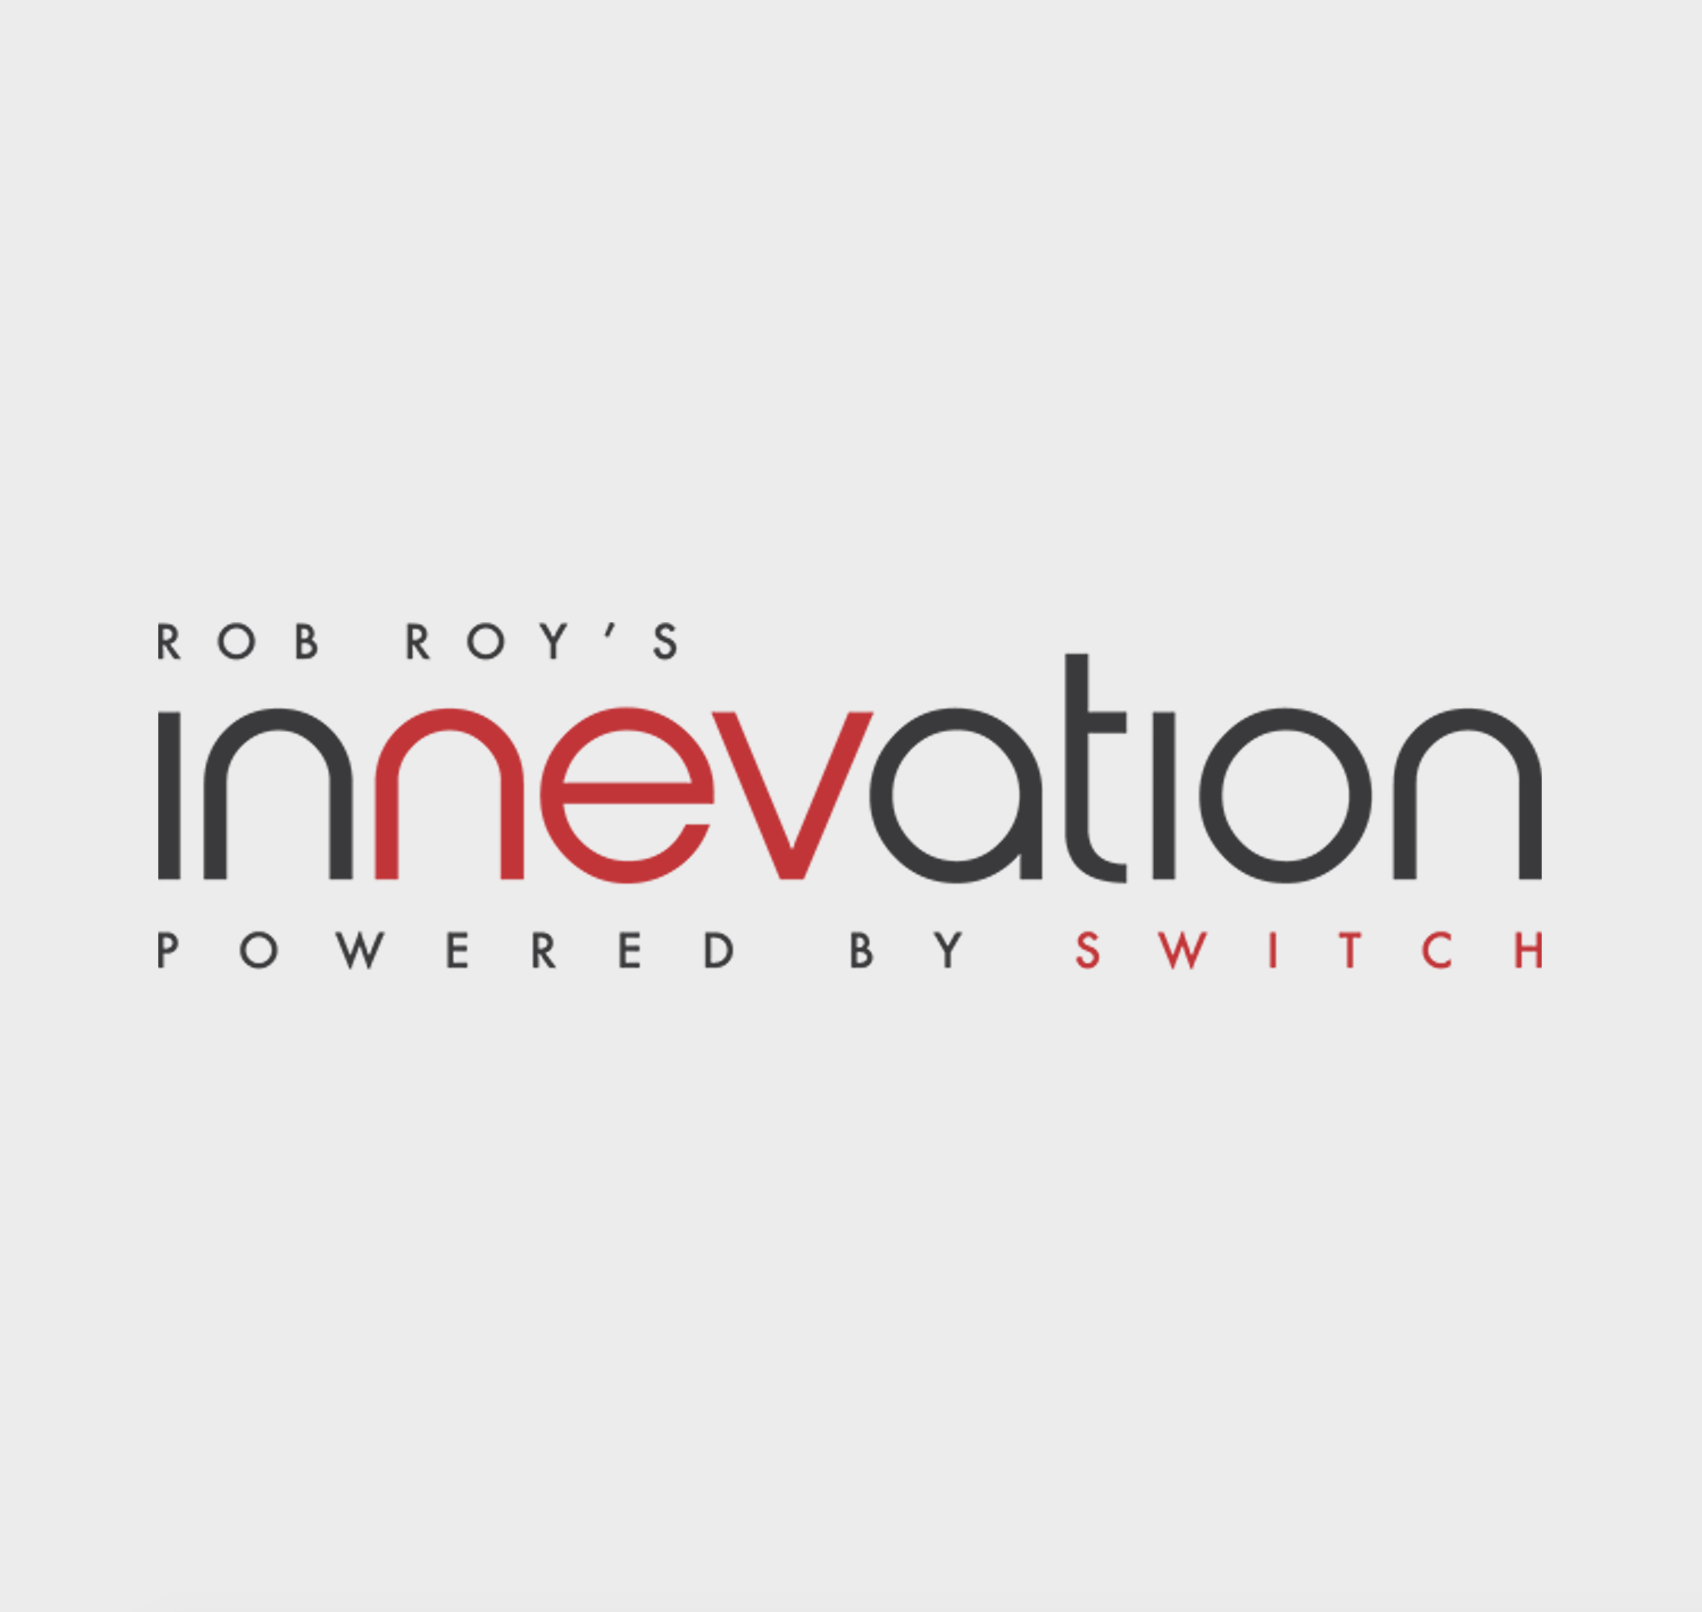 Innevation, Powered by Switch